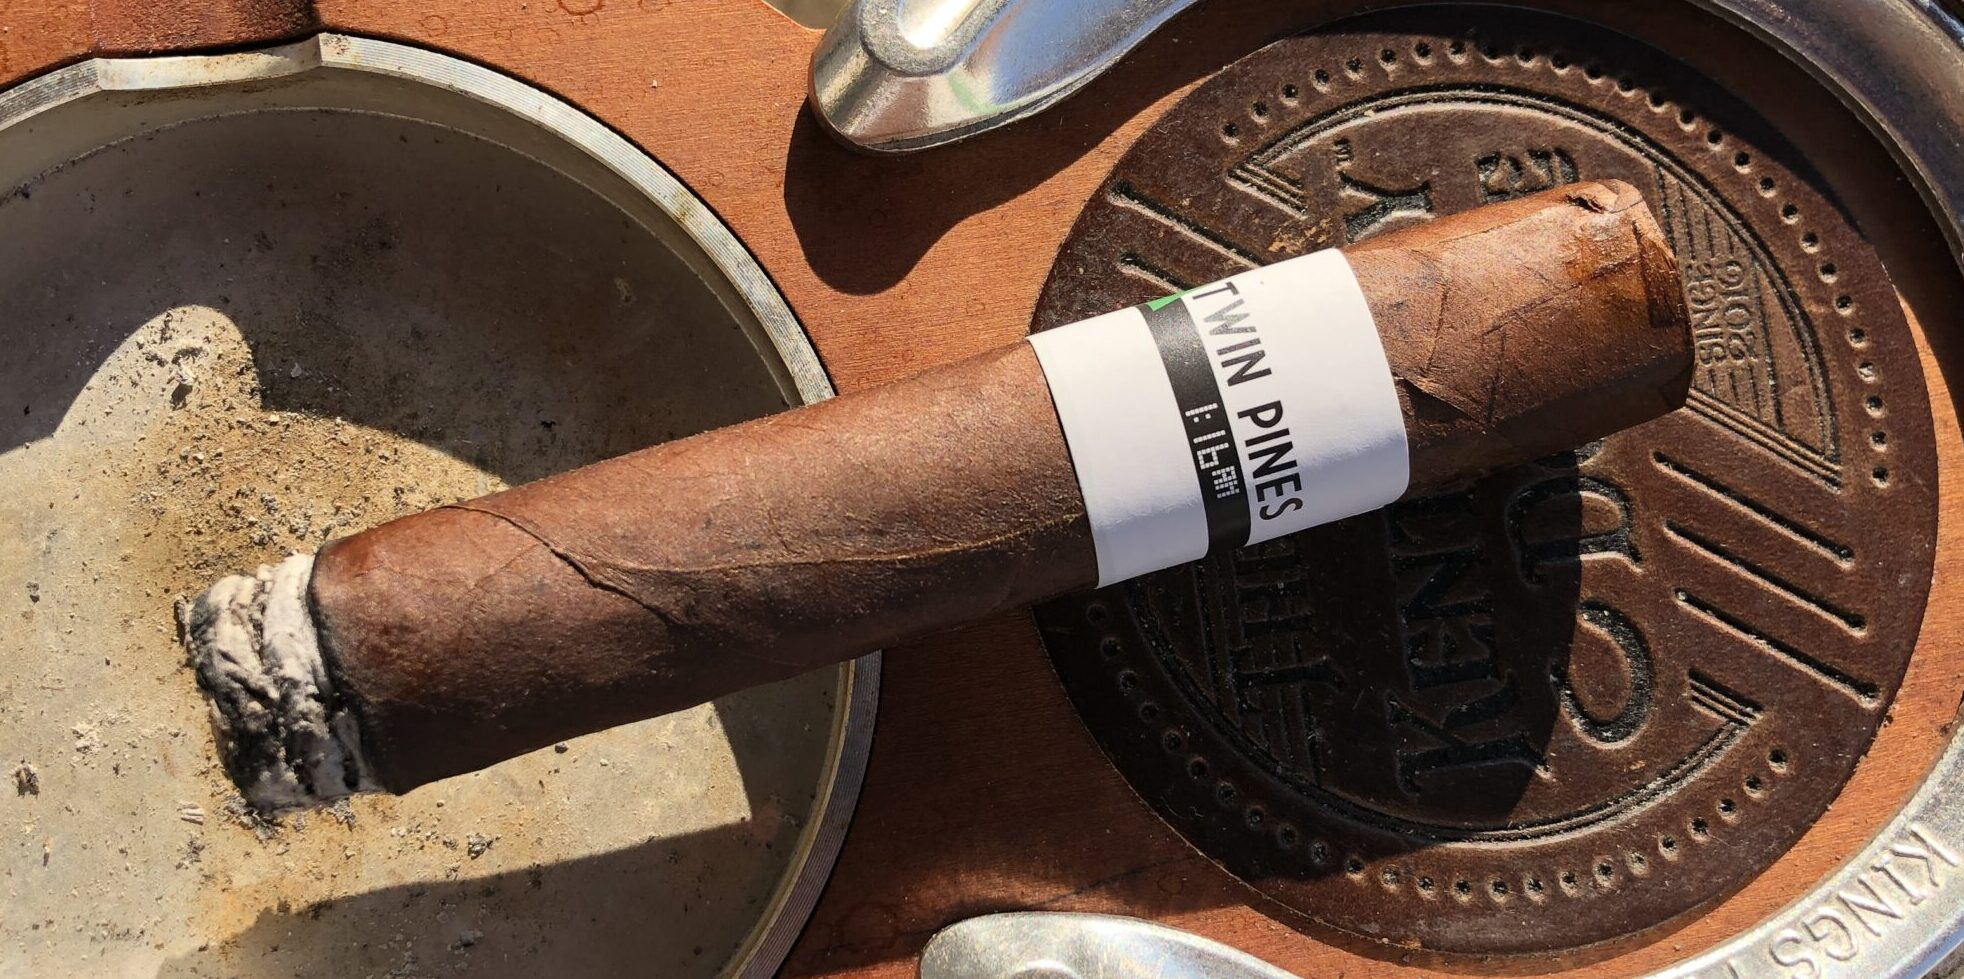 You are currently viewing Twin Pines Box-pressed Robusto by Jochy Blanco Cigar Review